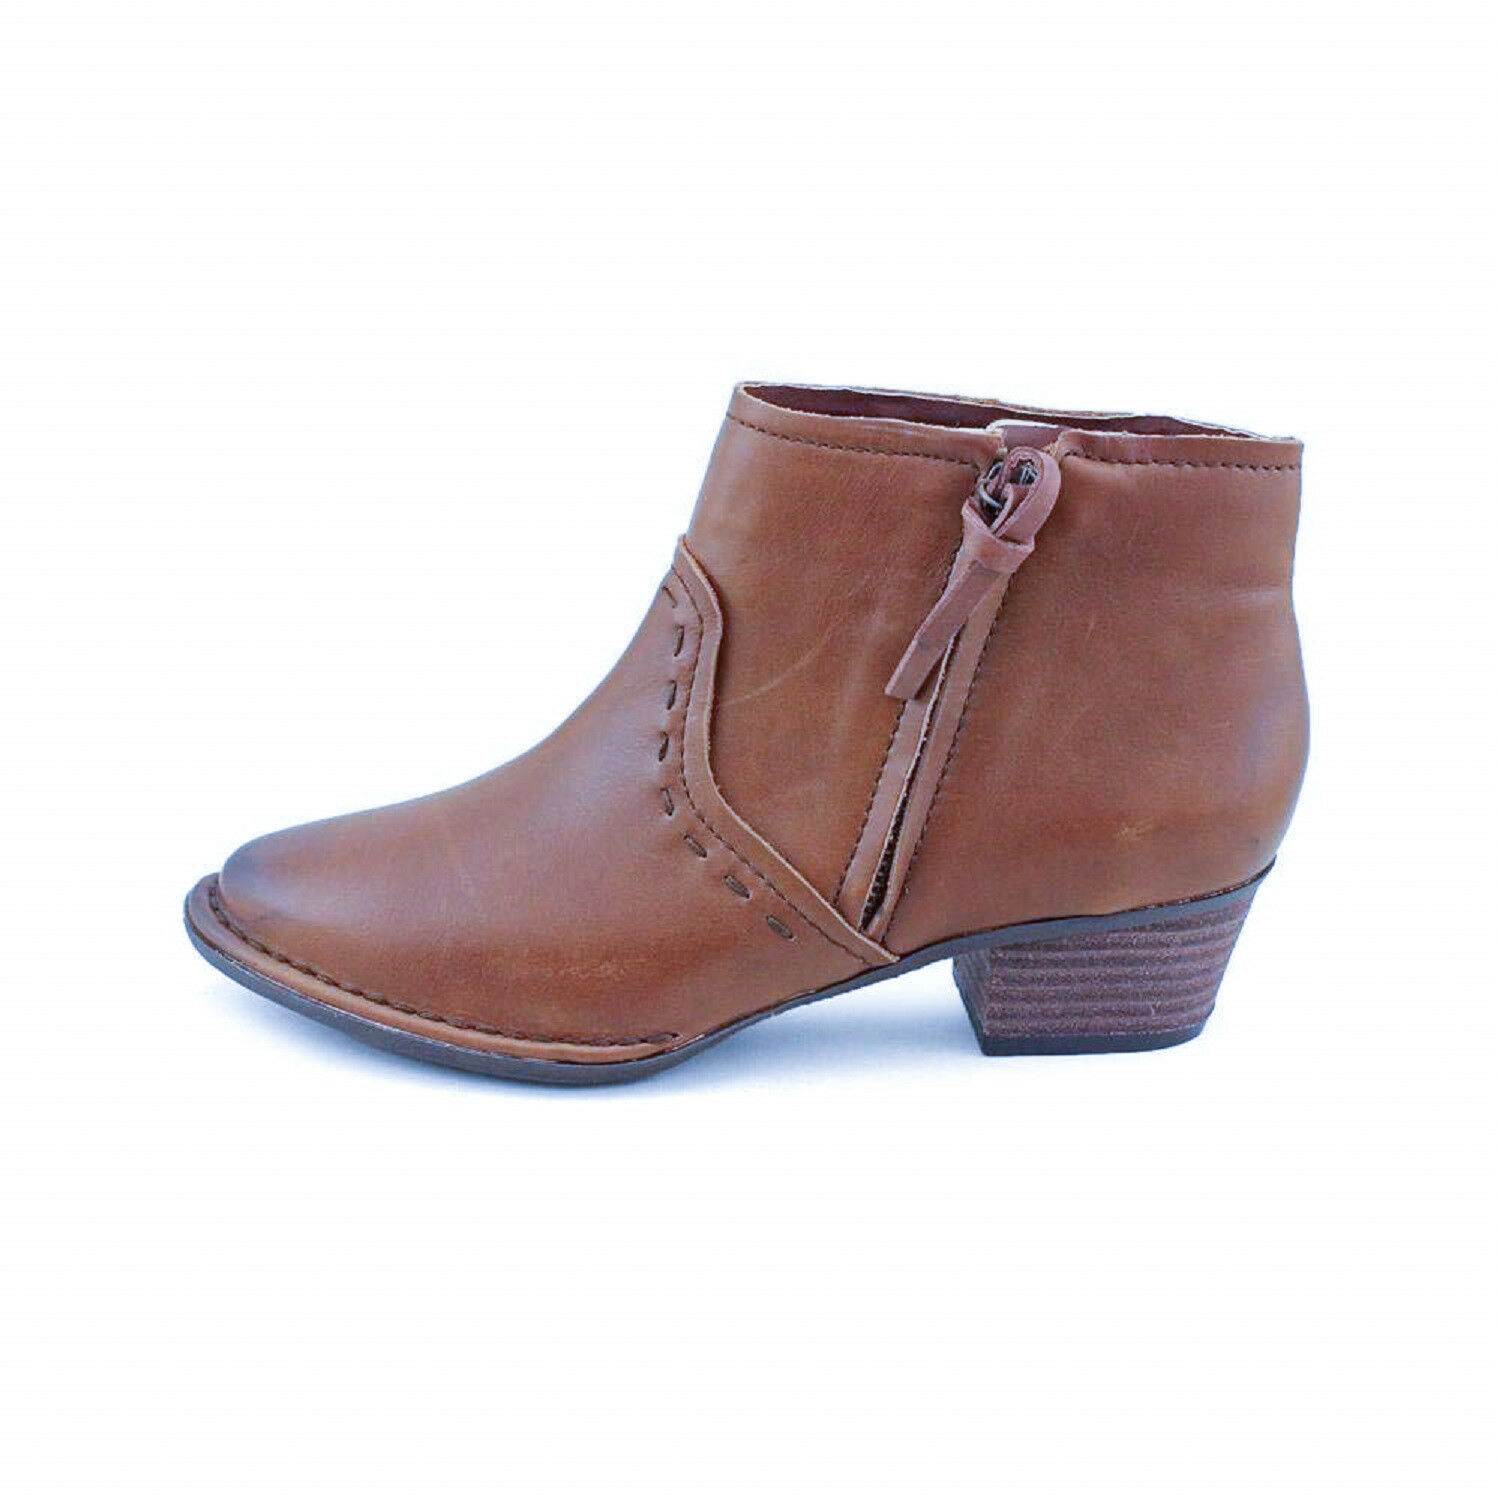 Giani Bernini Damenss ALVIN Leder ankle 9 boot booties 5.5 6.5 9 ankle 10 NEW f5f5ad